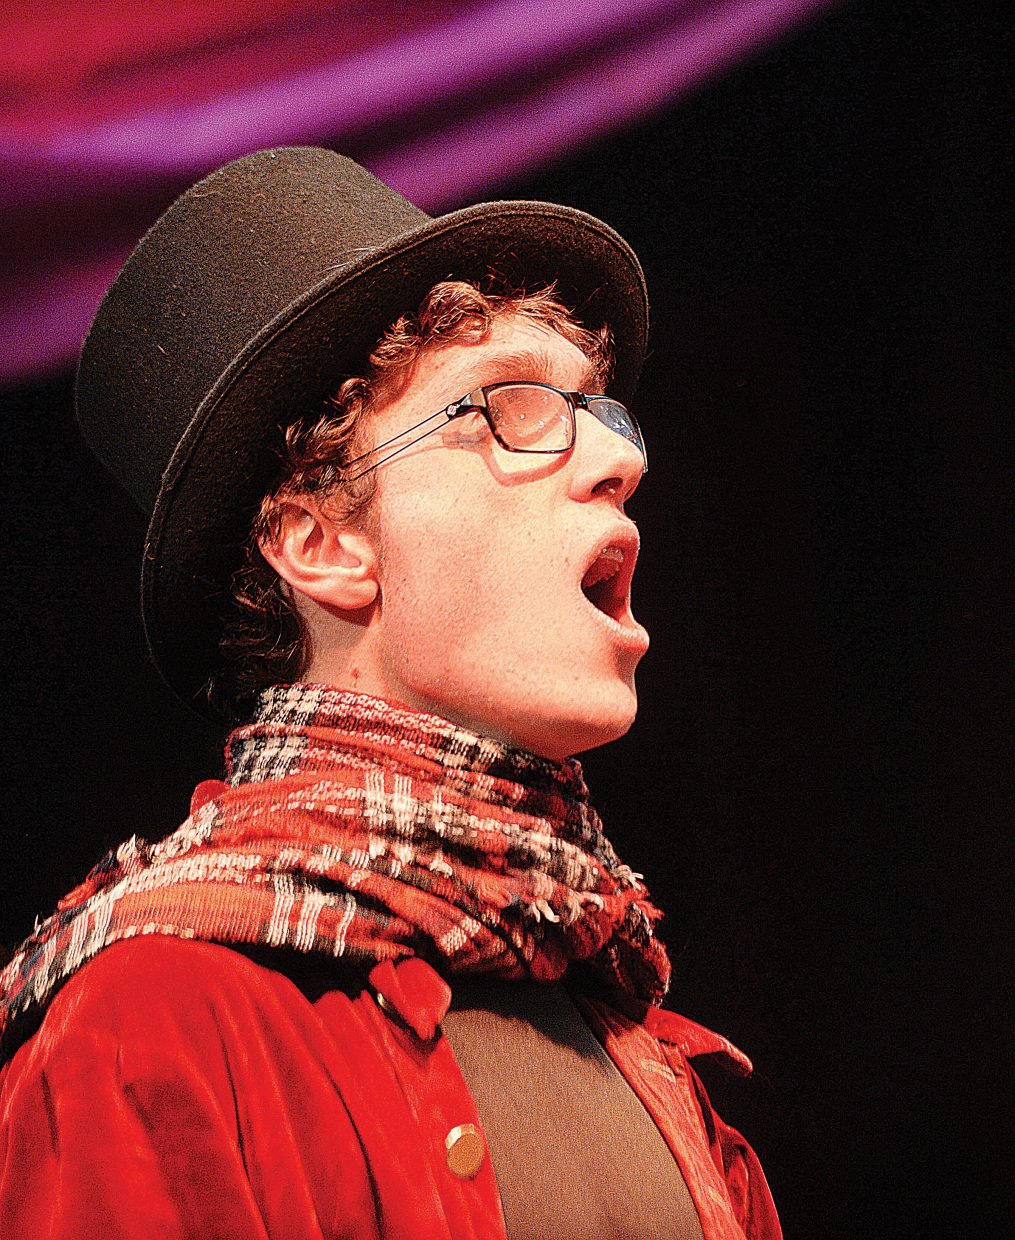 Max Timmerman, playing the part of Ebenezer Scrooge, rehearses a scene Wednesday evening at the Chief Theater. Scrooge's Christmas will be put on by the Chief Youth players at 7 p.m. Dec. 2-4. Tickets to the production at $15.